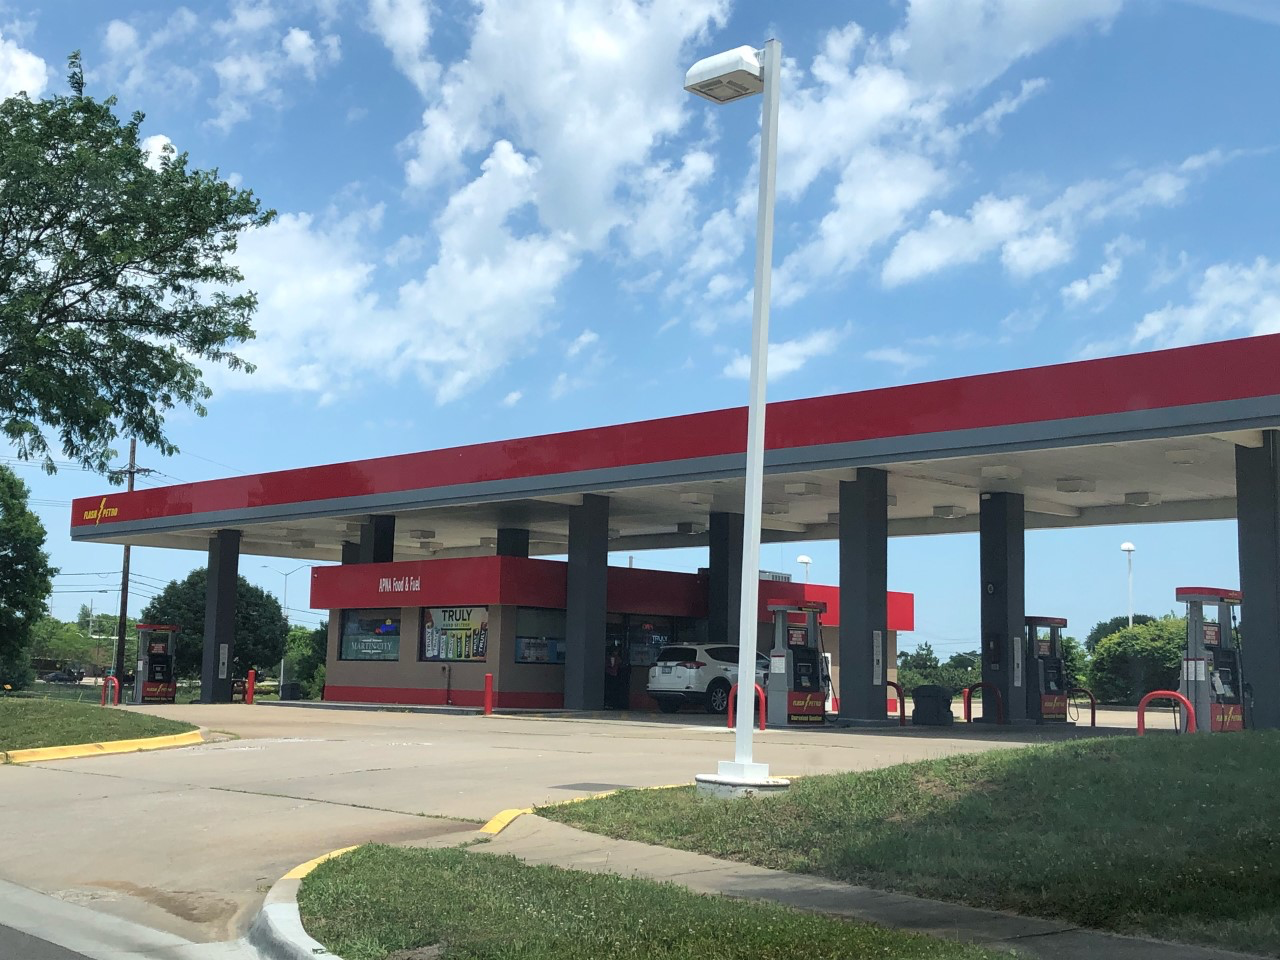 Phillips Gas Station